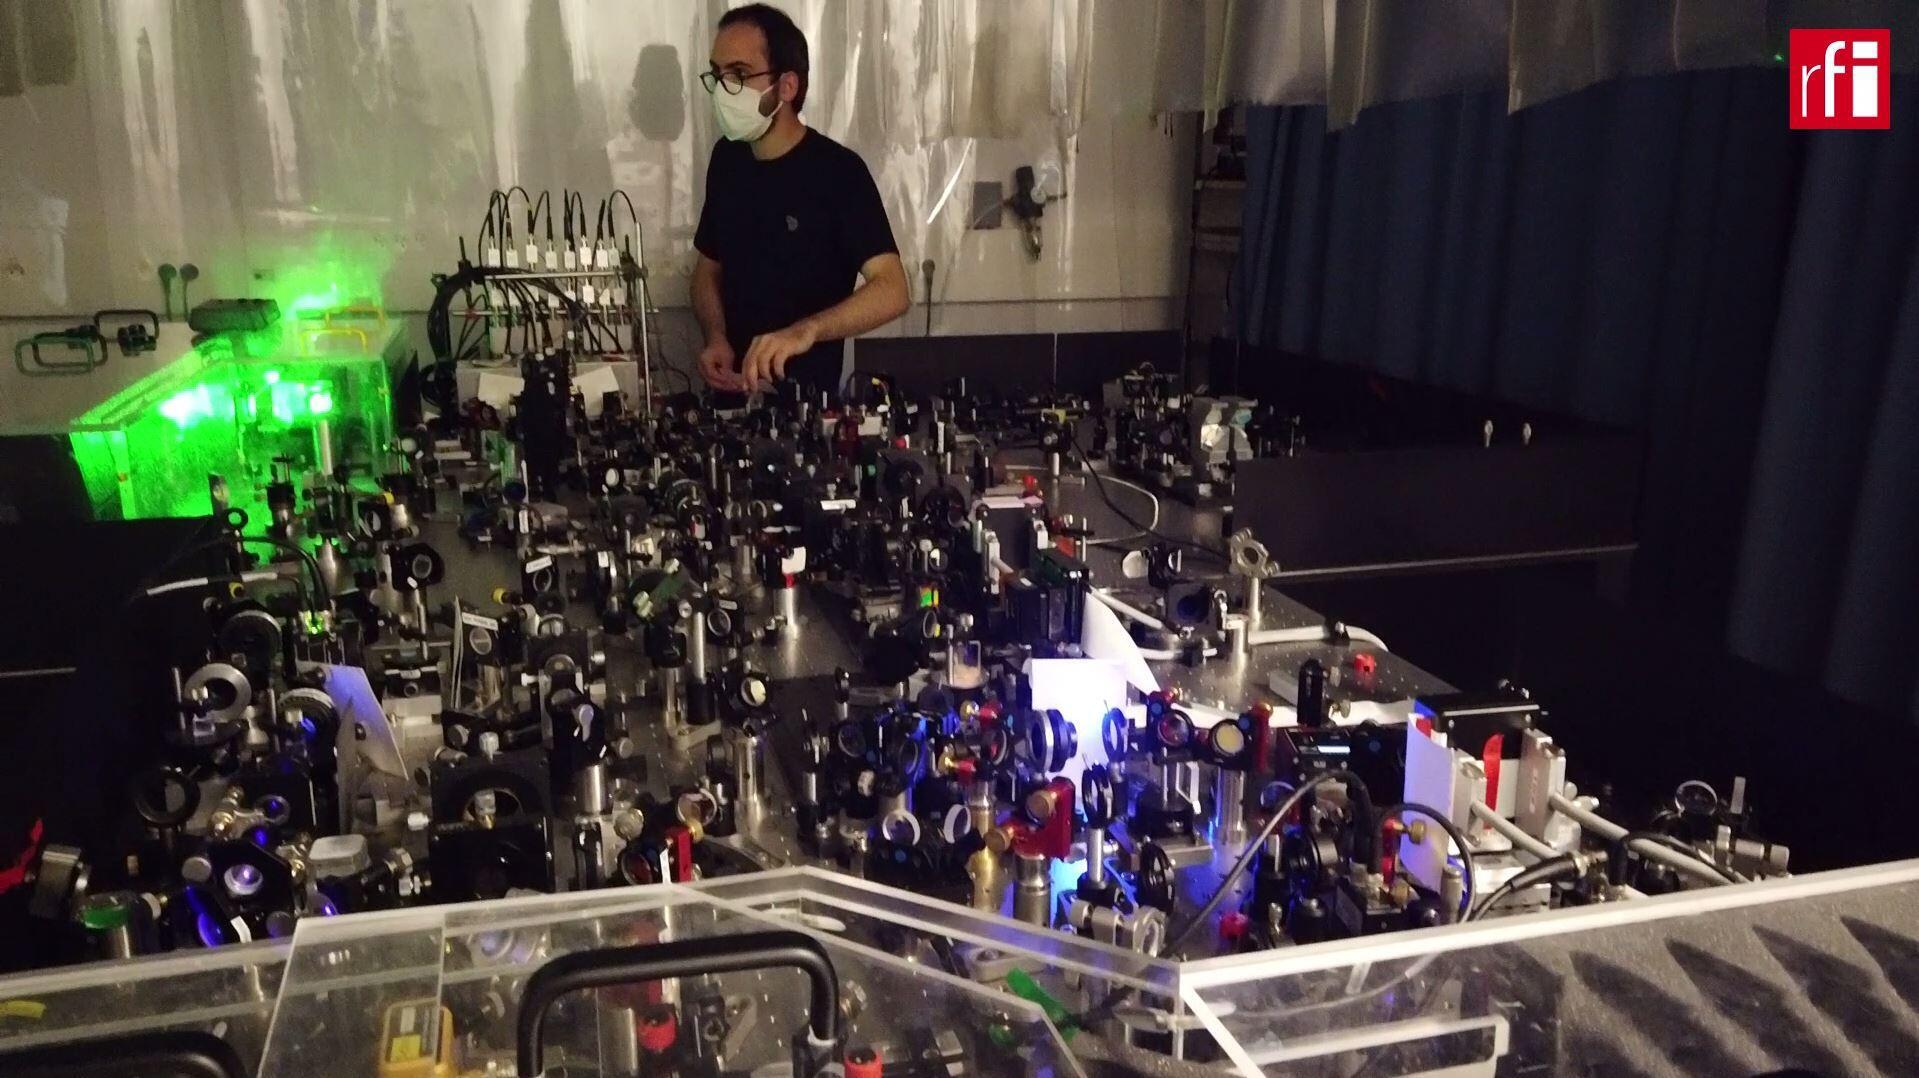 Searching for a single photon: Professor Nicolas Treps at the Sorbonne's Kastler Brossel Laboratory works on the complex procedure of processing quantum information.